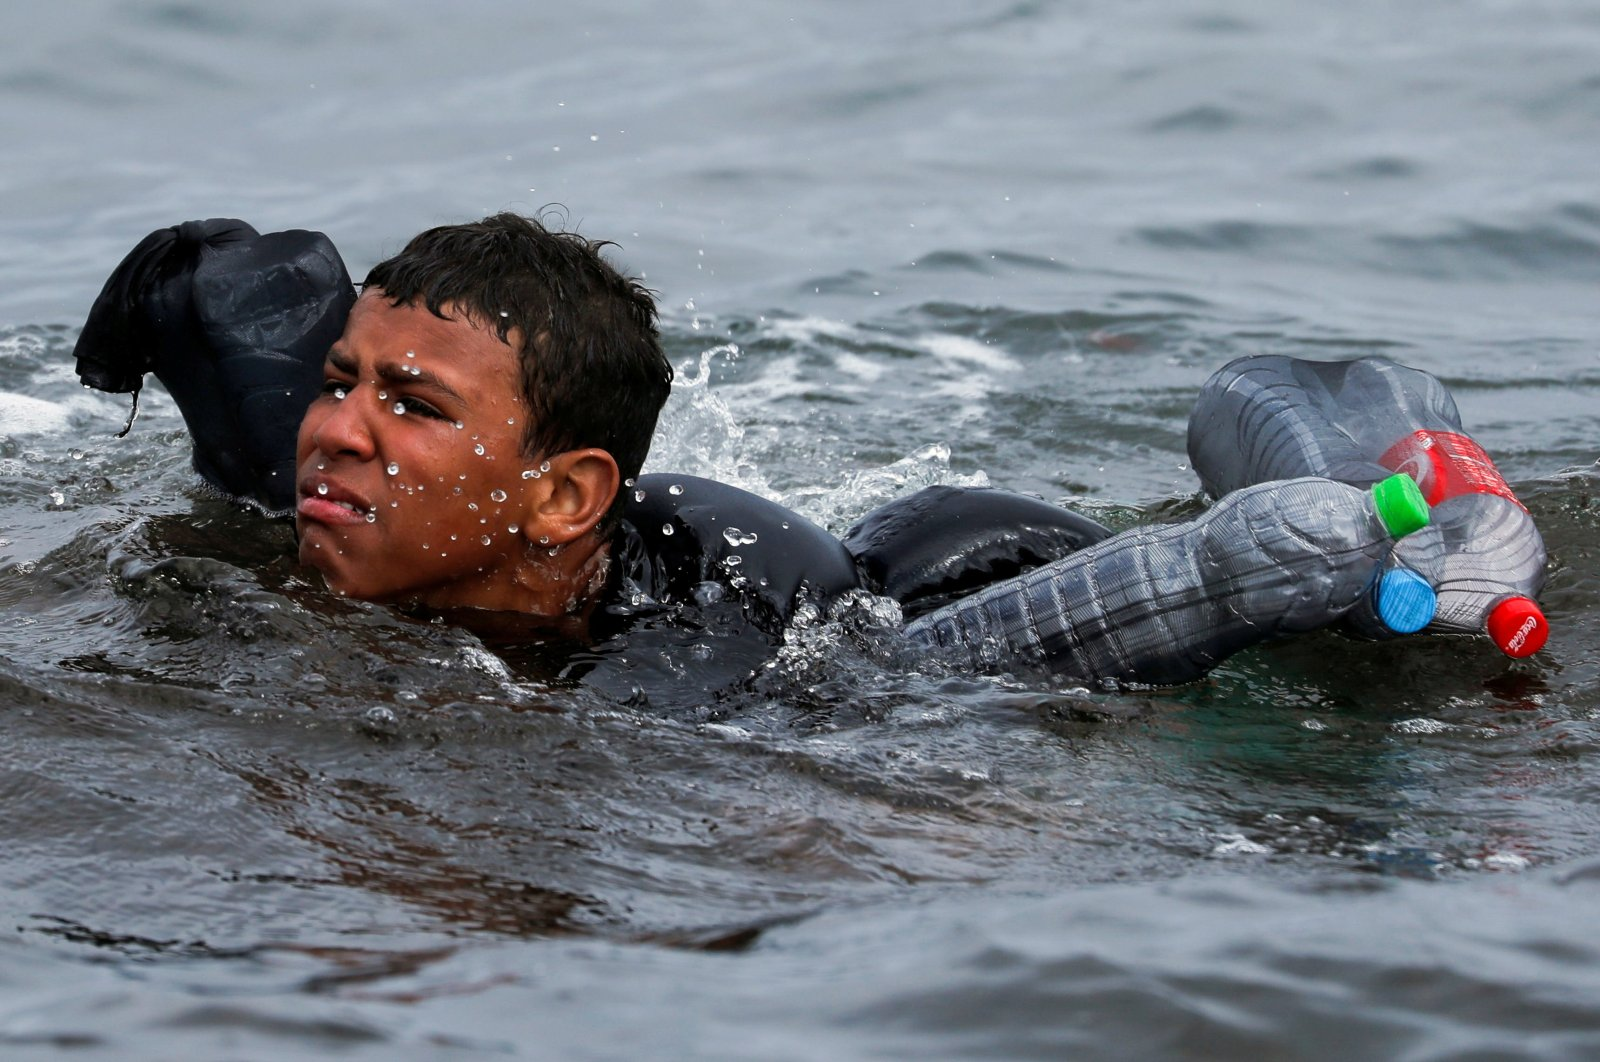 A Moroccan boy swims using bottles as a float, near the fence between the Spanish-Moroccan border, after thousands of migrants swam across the border, in Ceuta, Spain, May 19, 2021. (Reuters Photo)